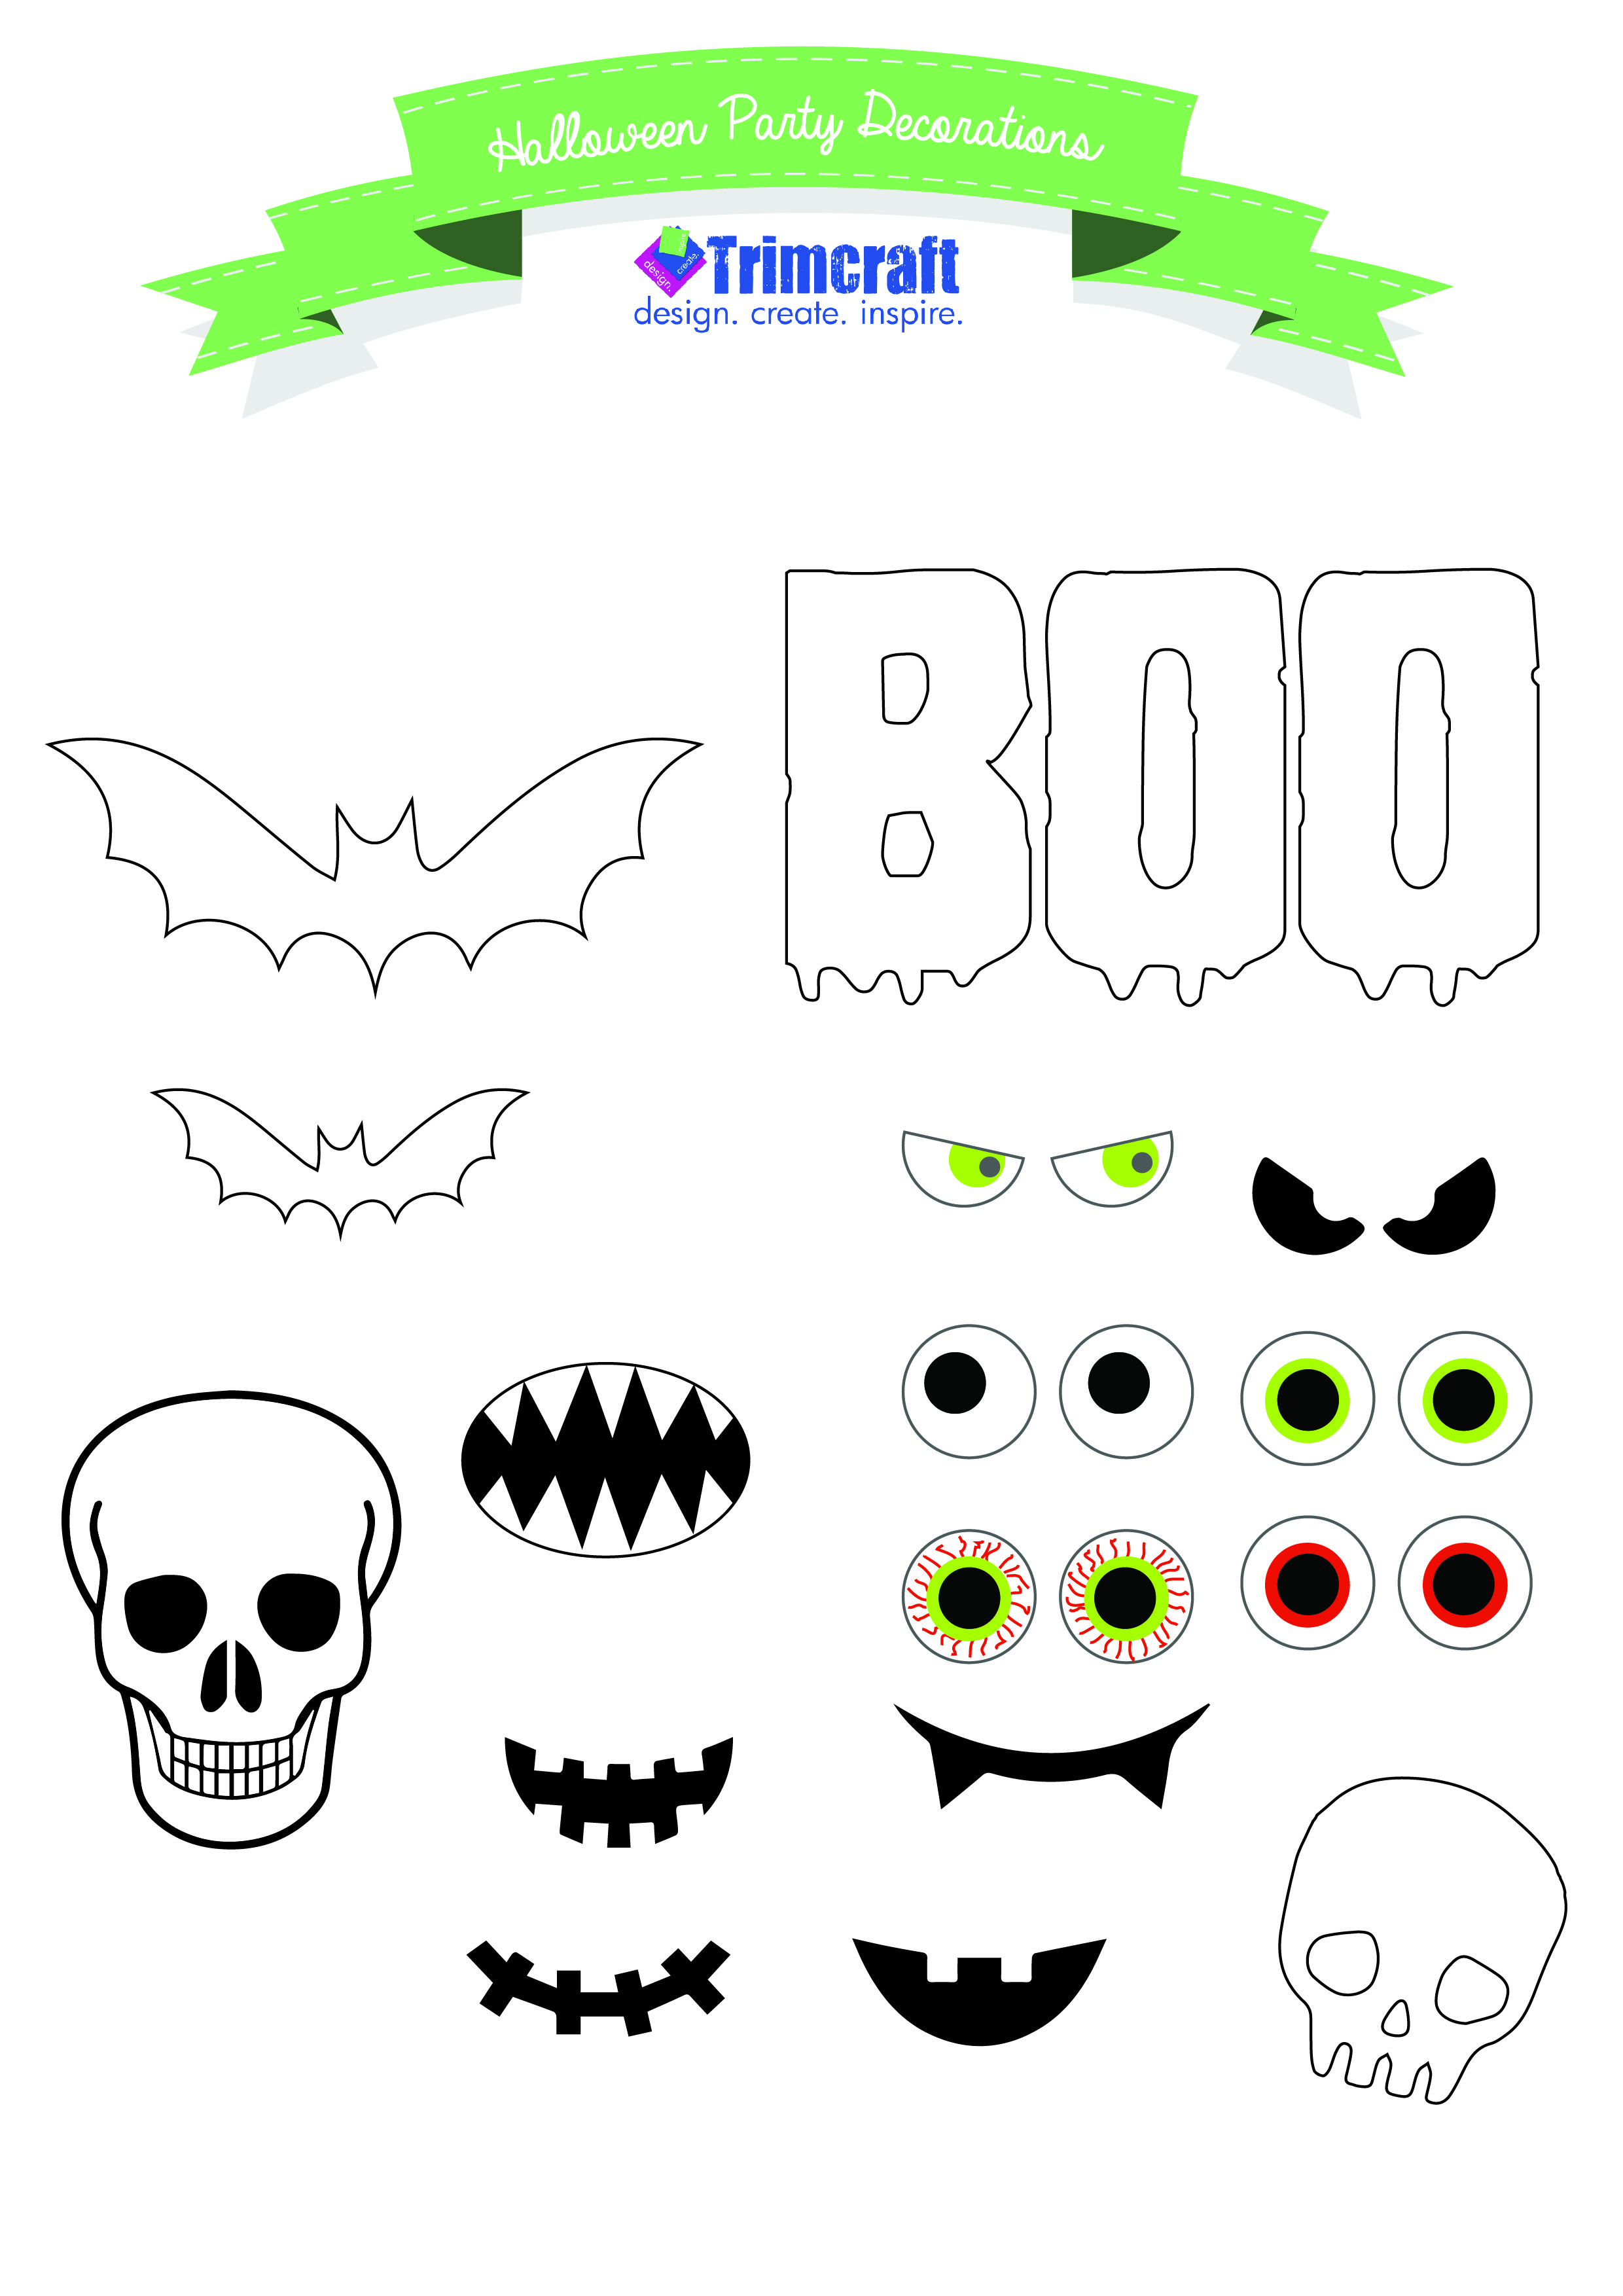 diy halloween party craft ideas with tutorials and free printable decorations template - Halloween Decoration Templates